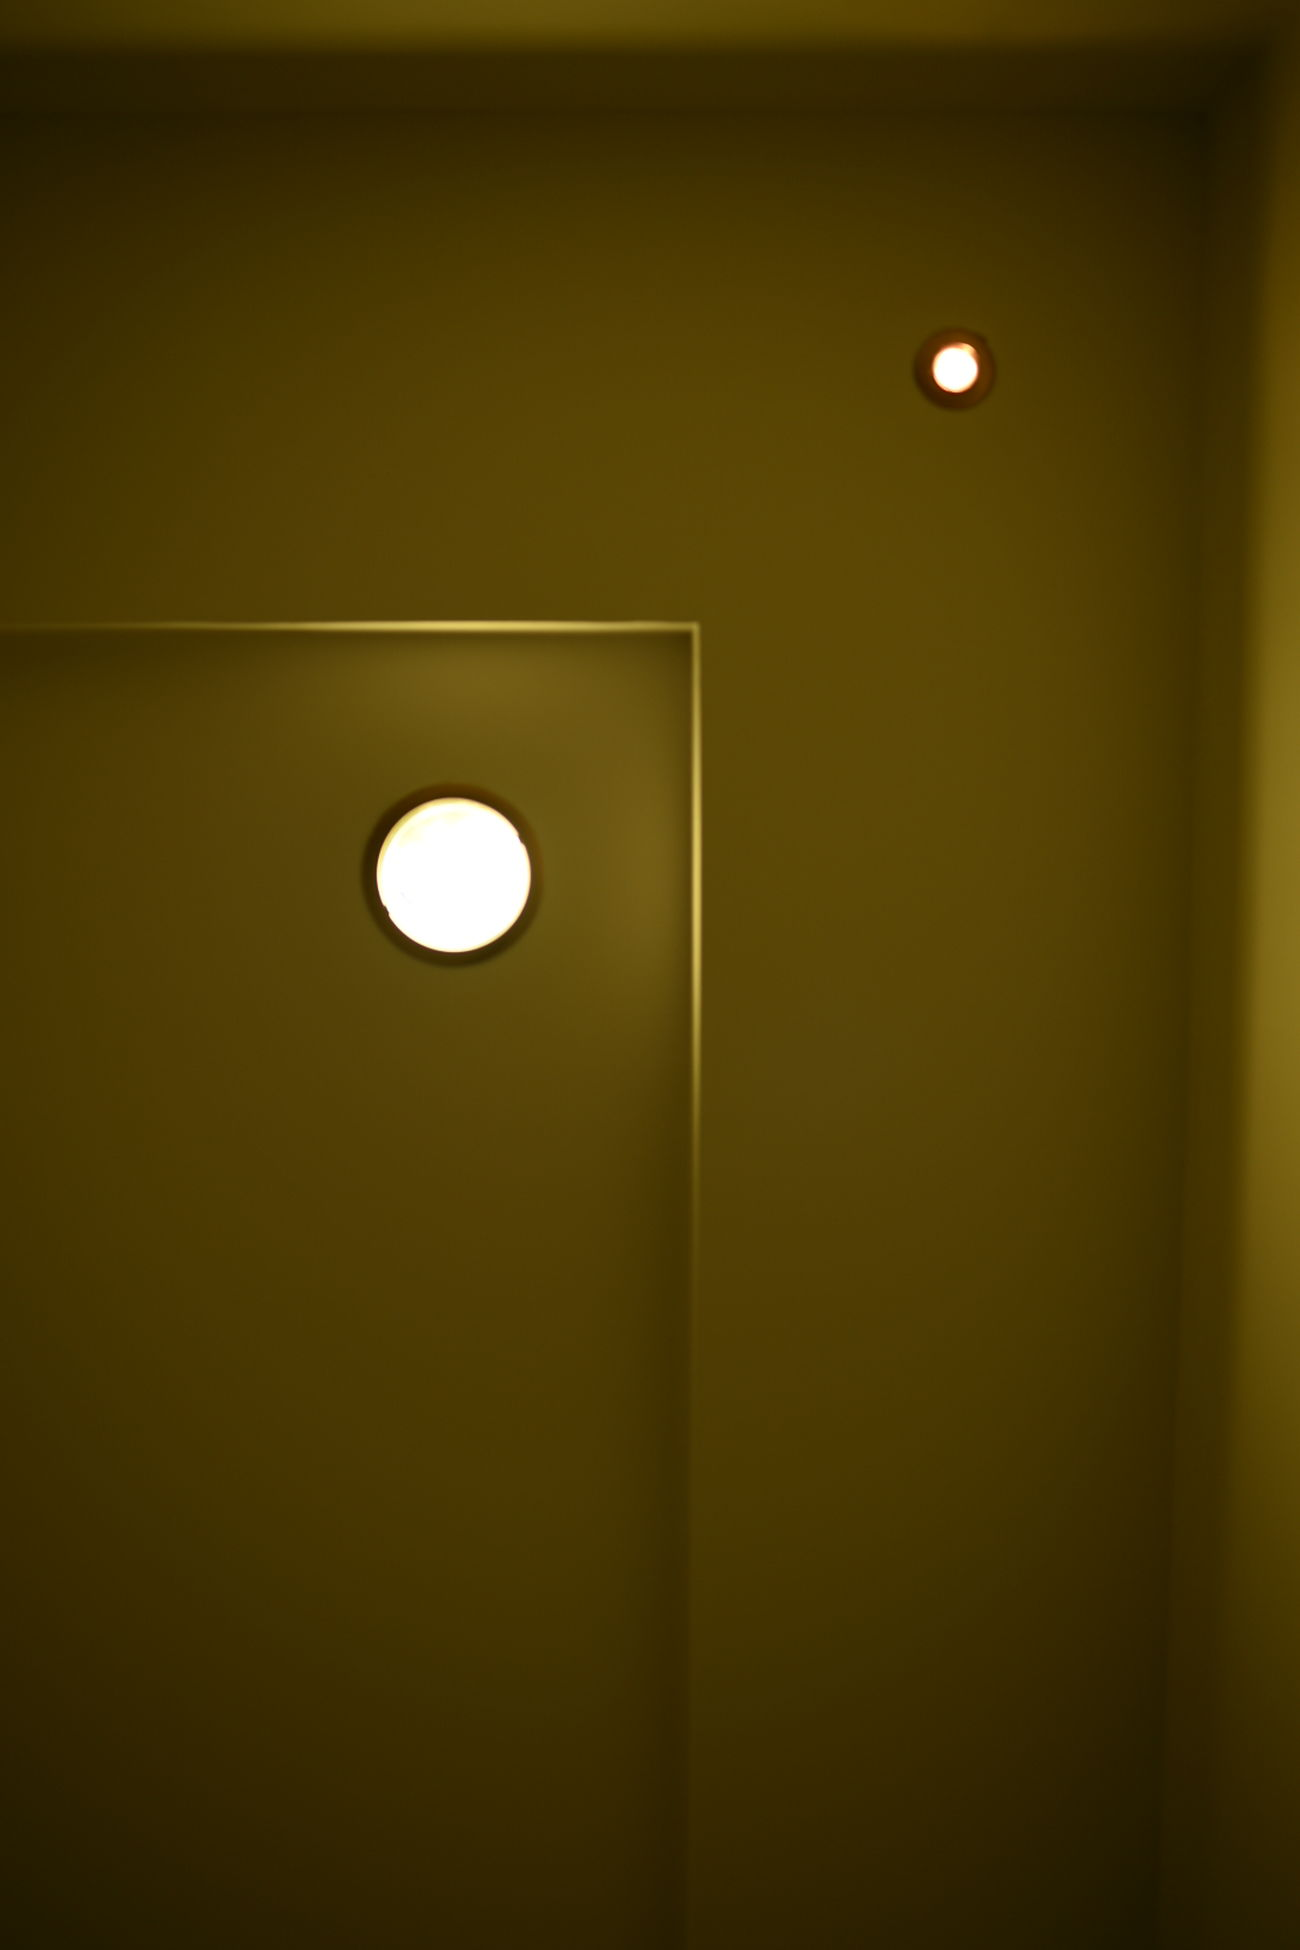 Day 23 - Moon Indoors  Illuminated Light - Natural Phenomenon Circle Electric Light Recessed Light Geometric Shape Green Color No People Vibrant Color Light And Shadows Light And Shadow Light Lights 365 365project 35mm D750 Nikon Full Frame Taking Photos 365 Day Challenge Architecture Lit